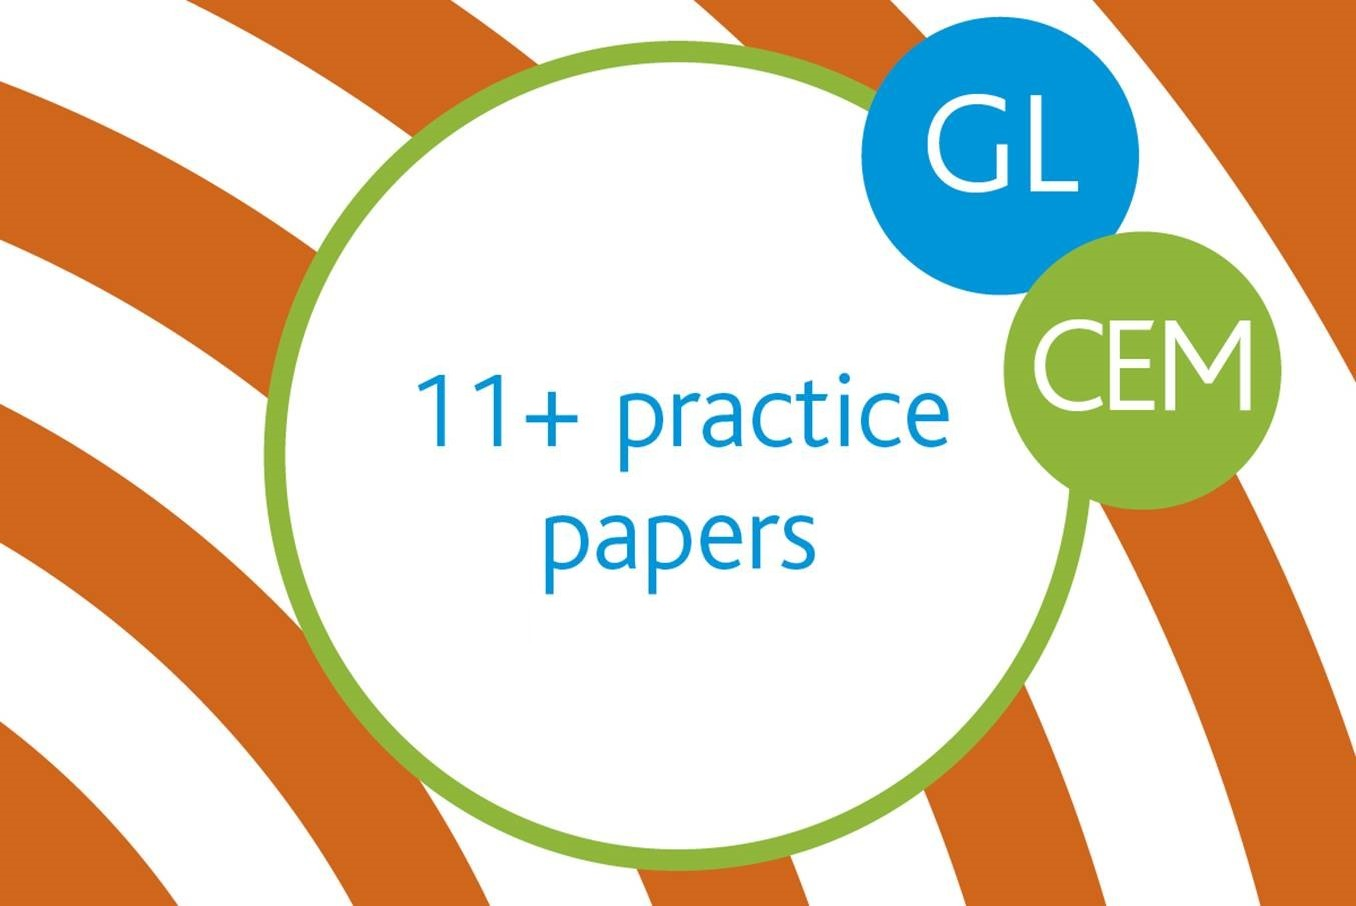 11+ CEM and GL practice papers